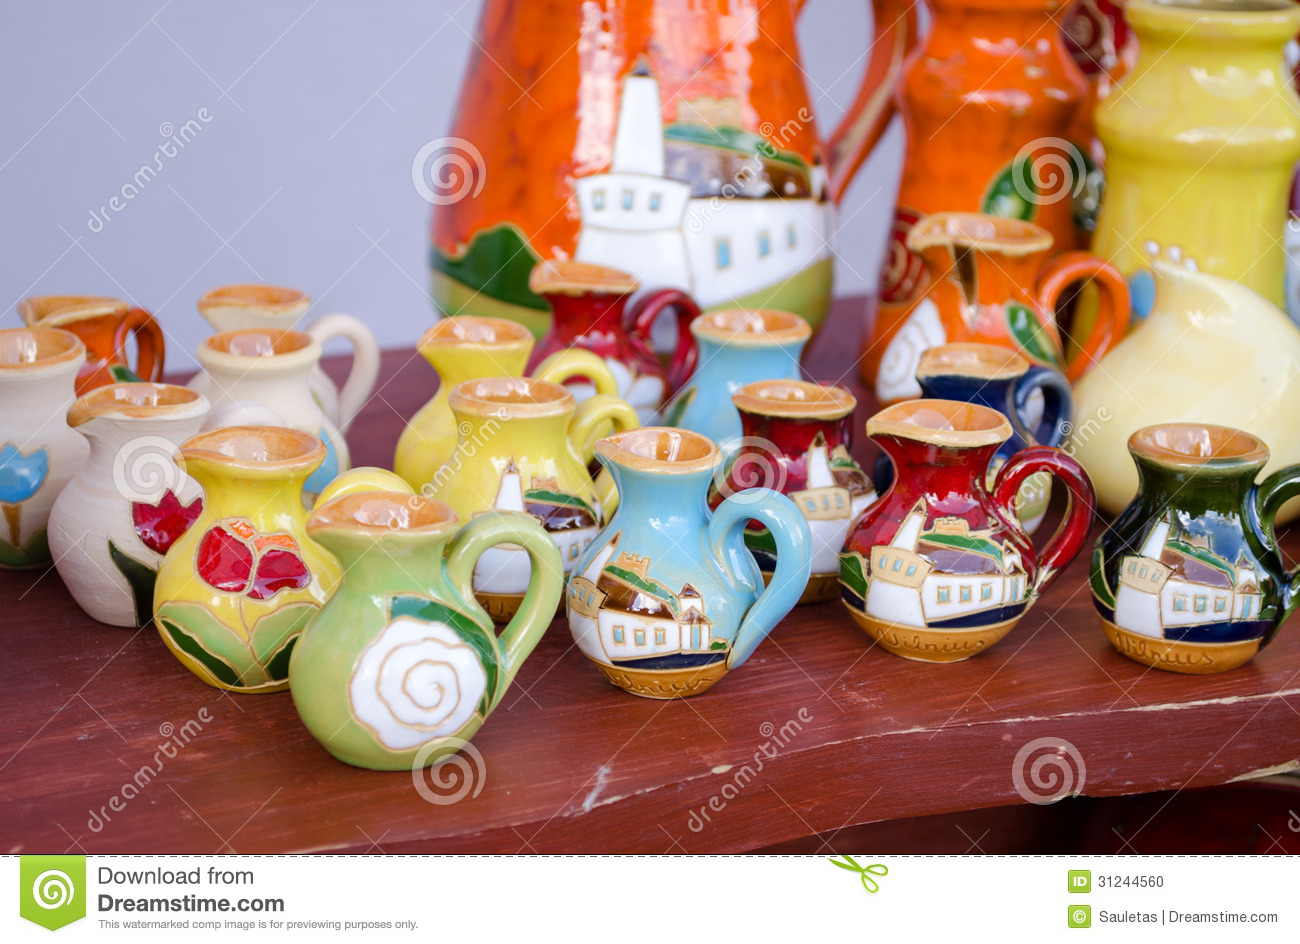 Various colorful clay handmade jug jar sell market stock for Crafts for selling at market